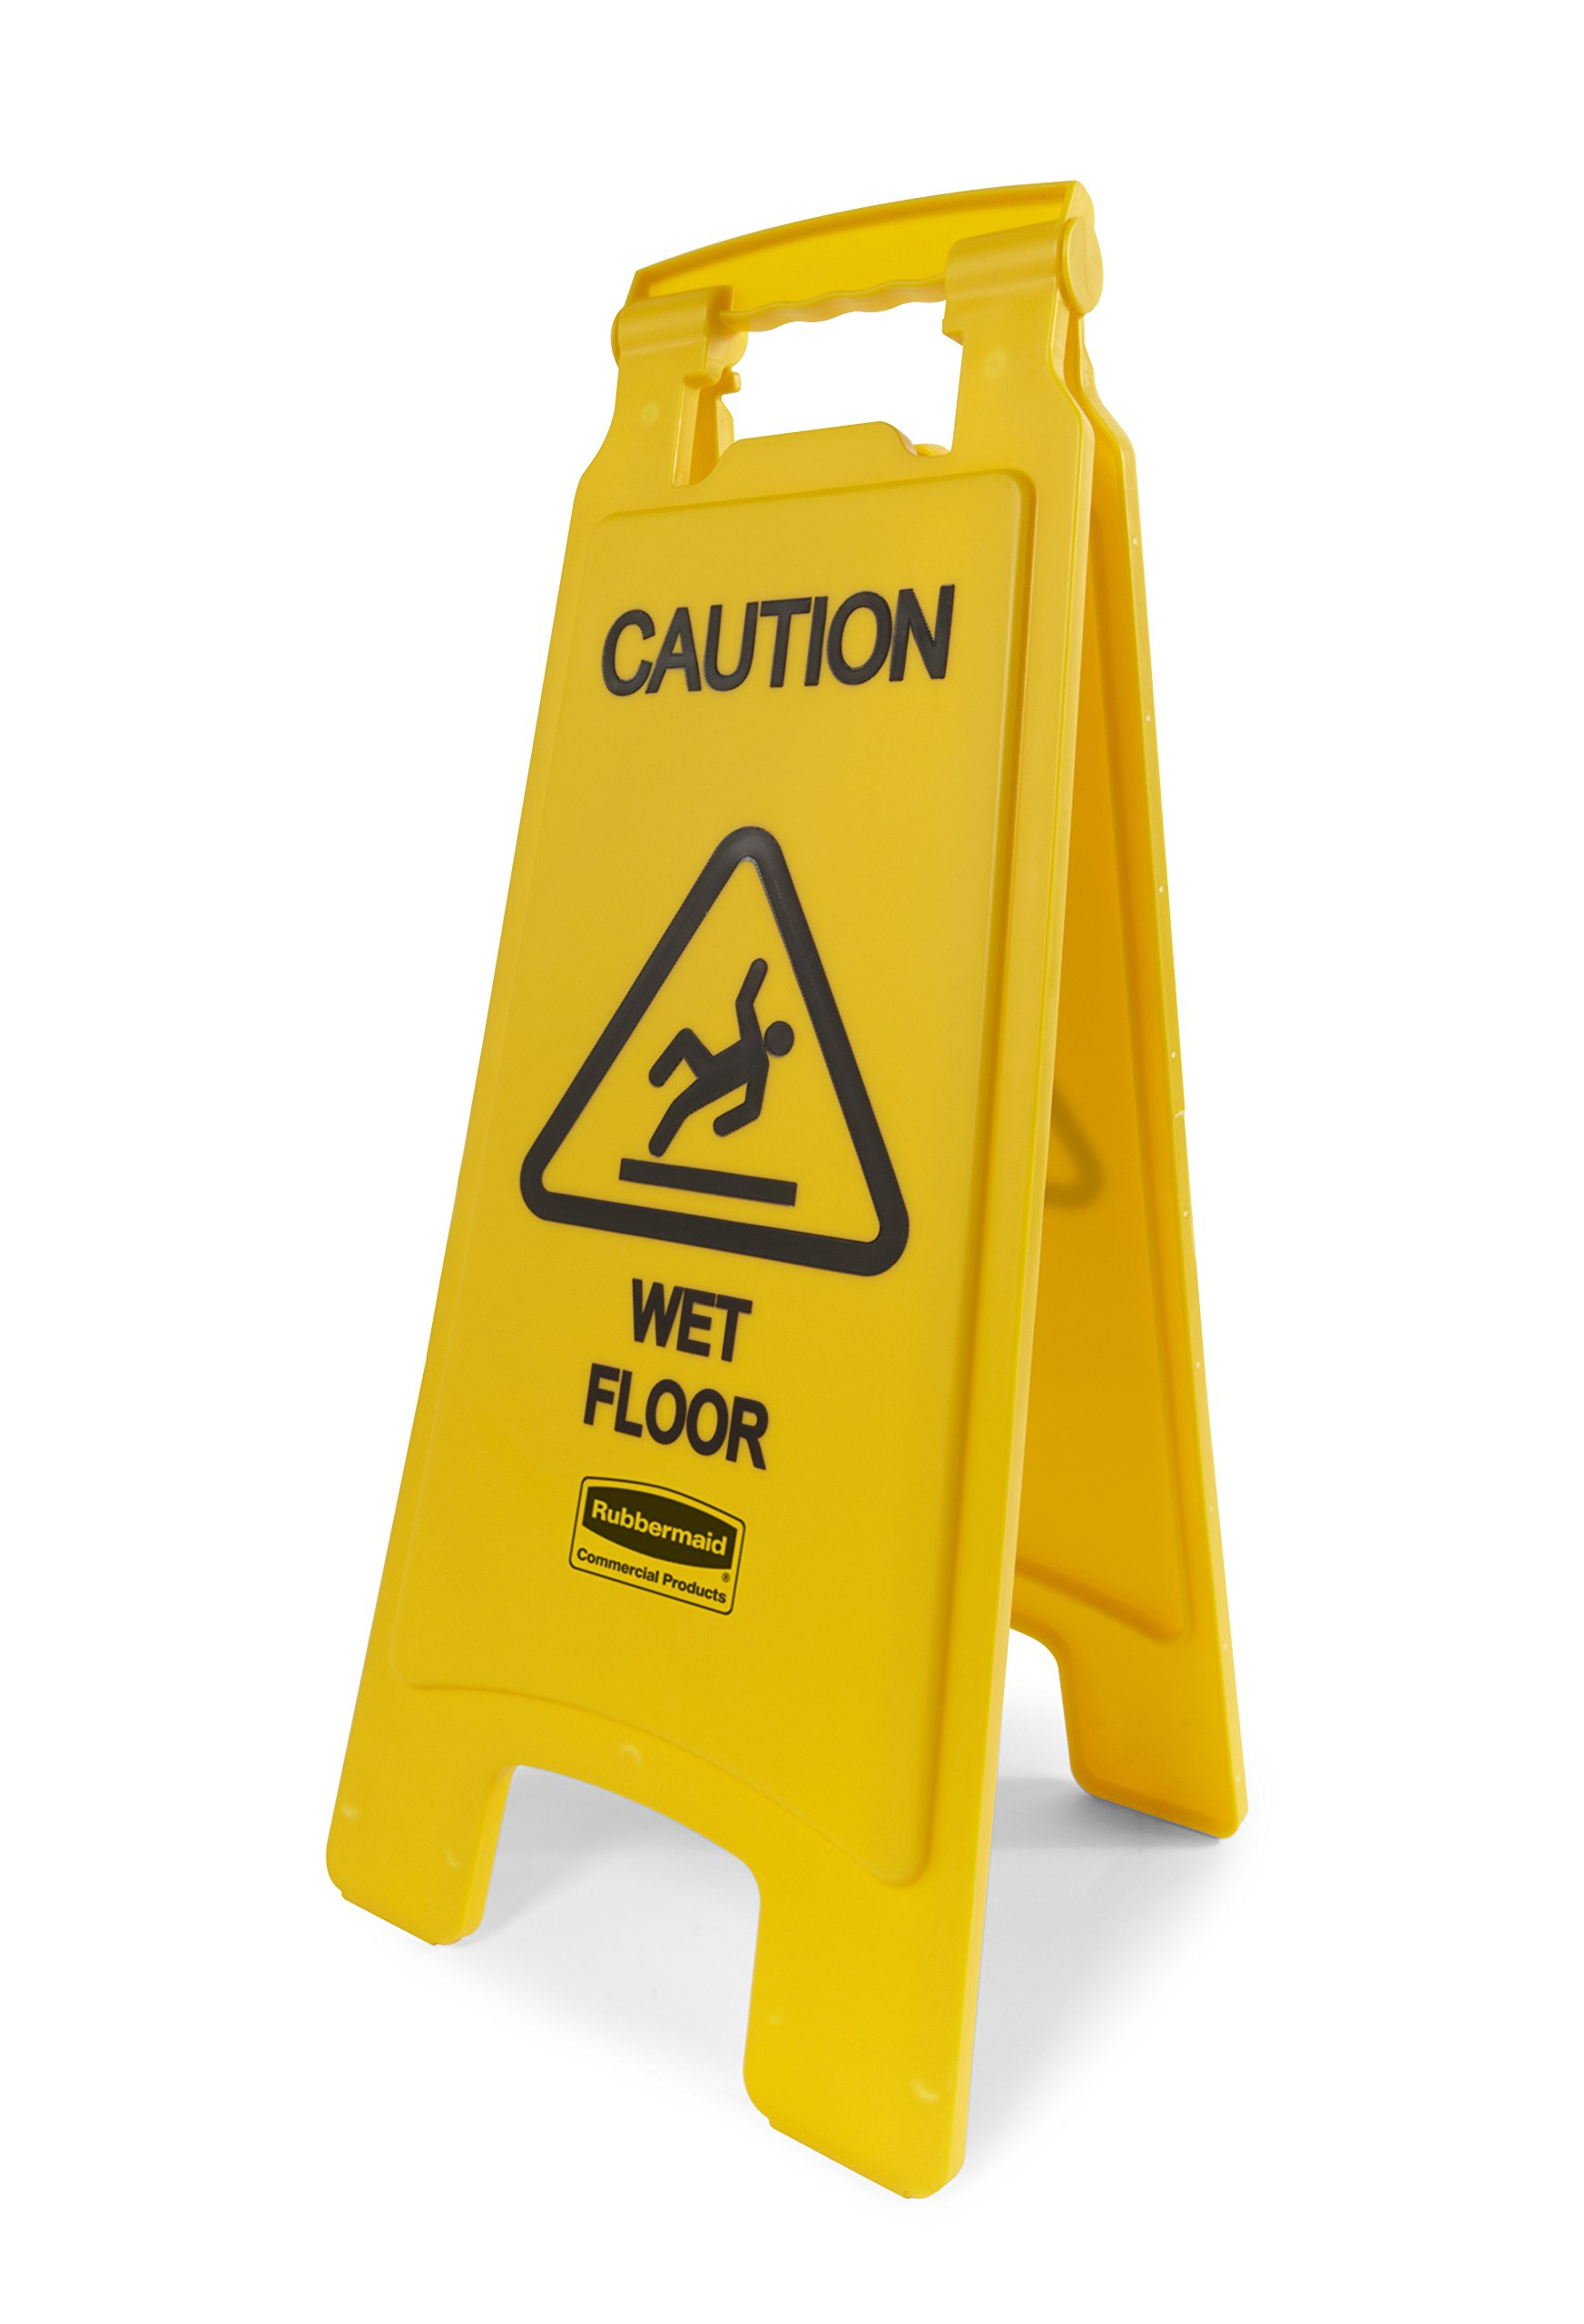 Amazon.com: Caution Wet Floor Sign: Health & Personal Care